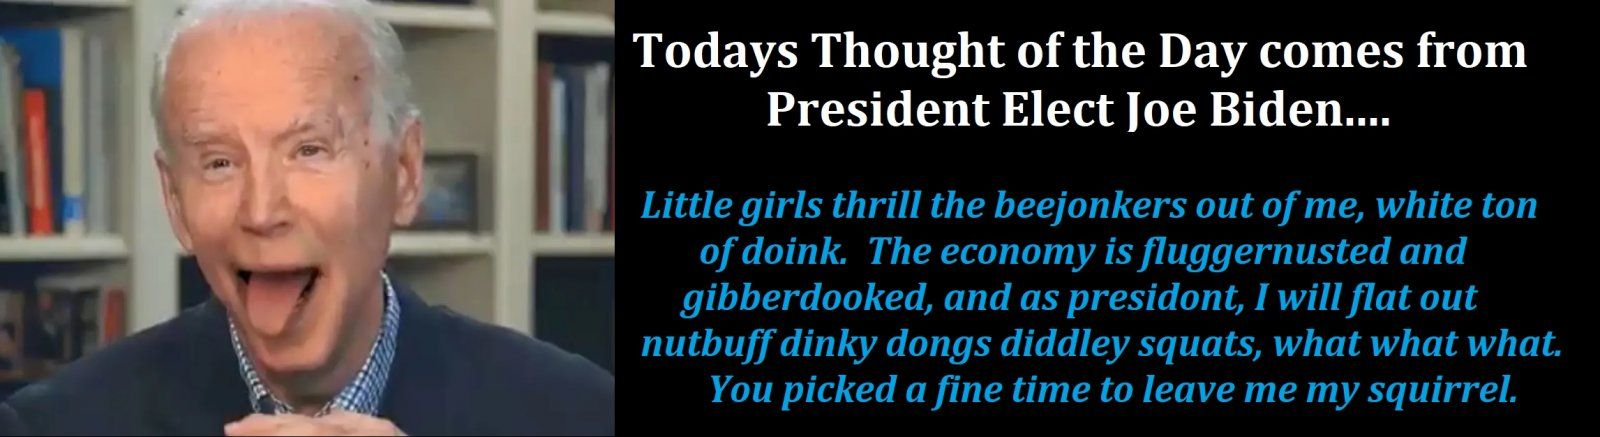 Biden thought of the day.jpg